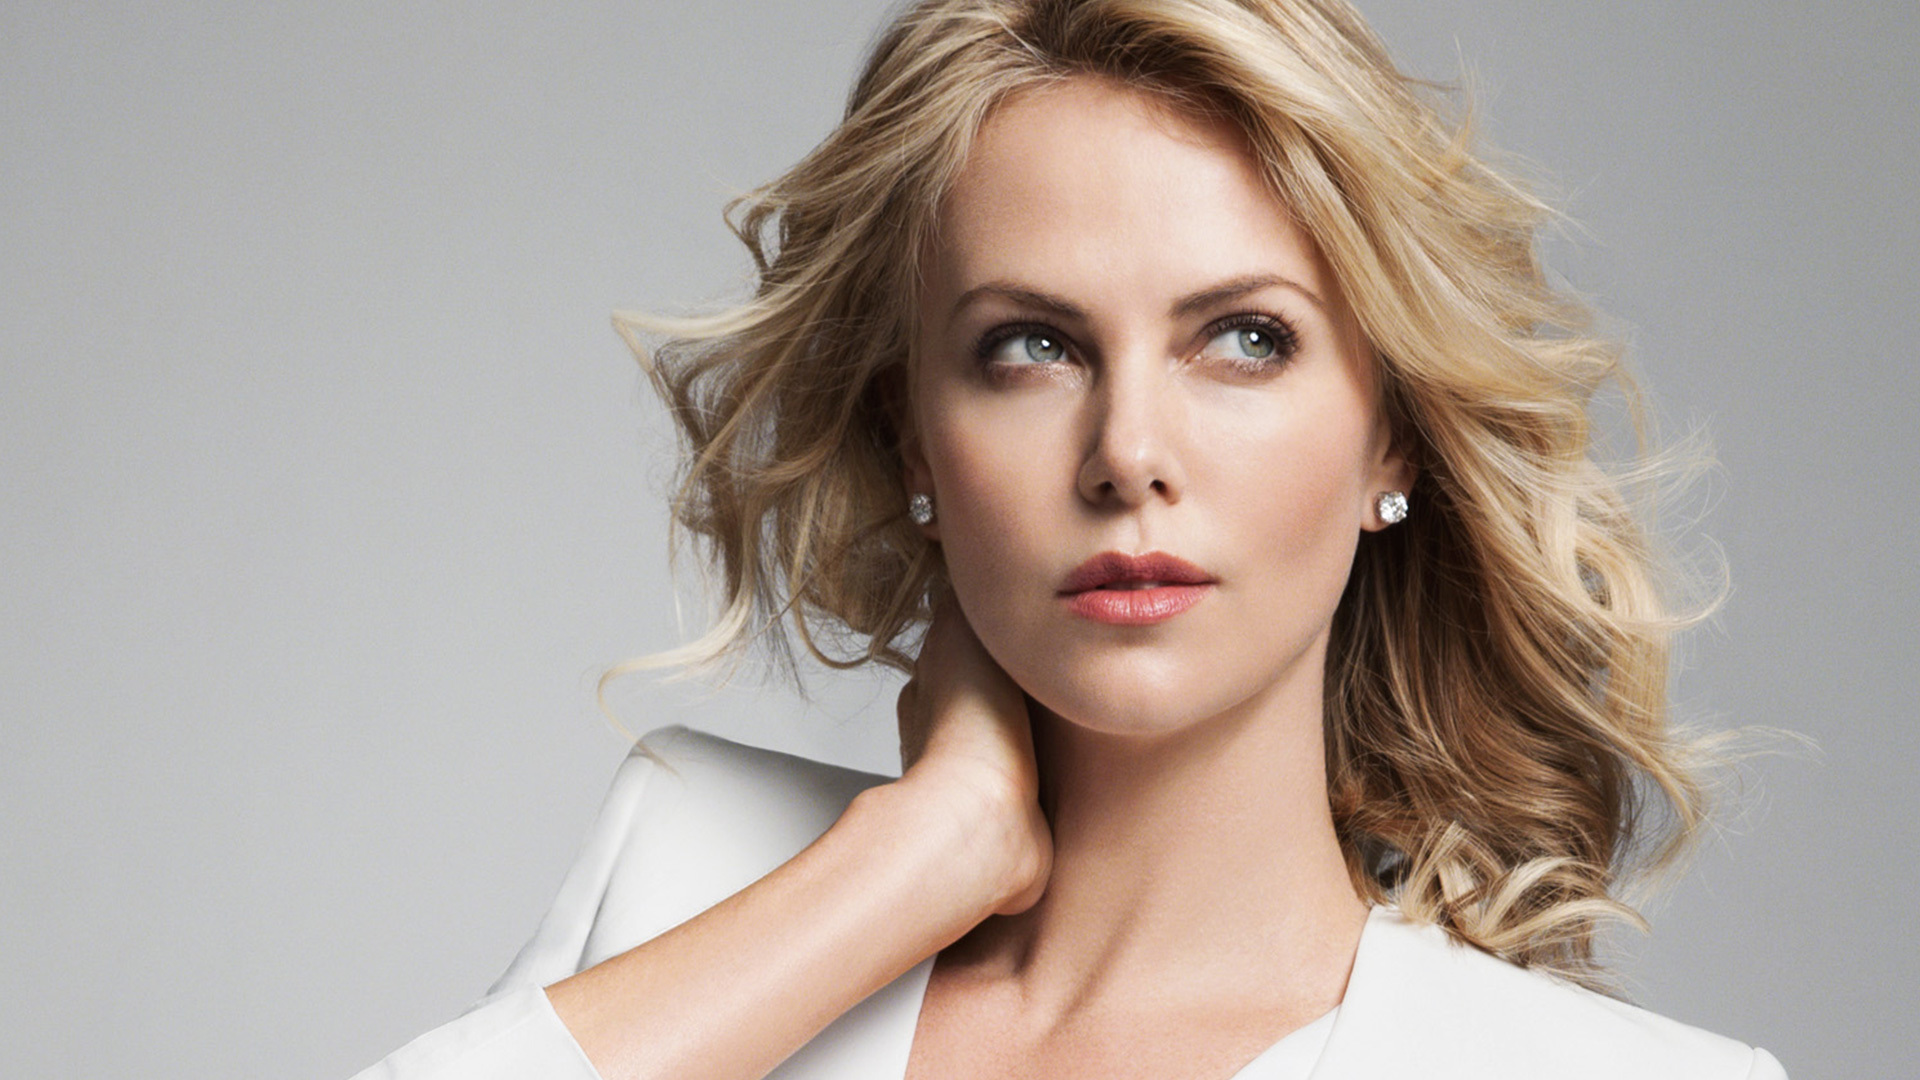 Charlize Theron Wallpapers Images Photos Pictures Backgrounds Charlize Theron